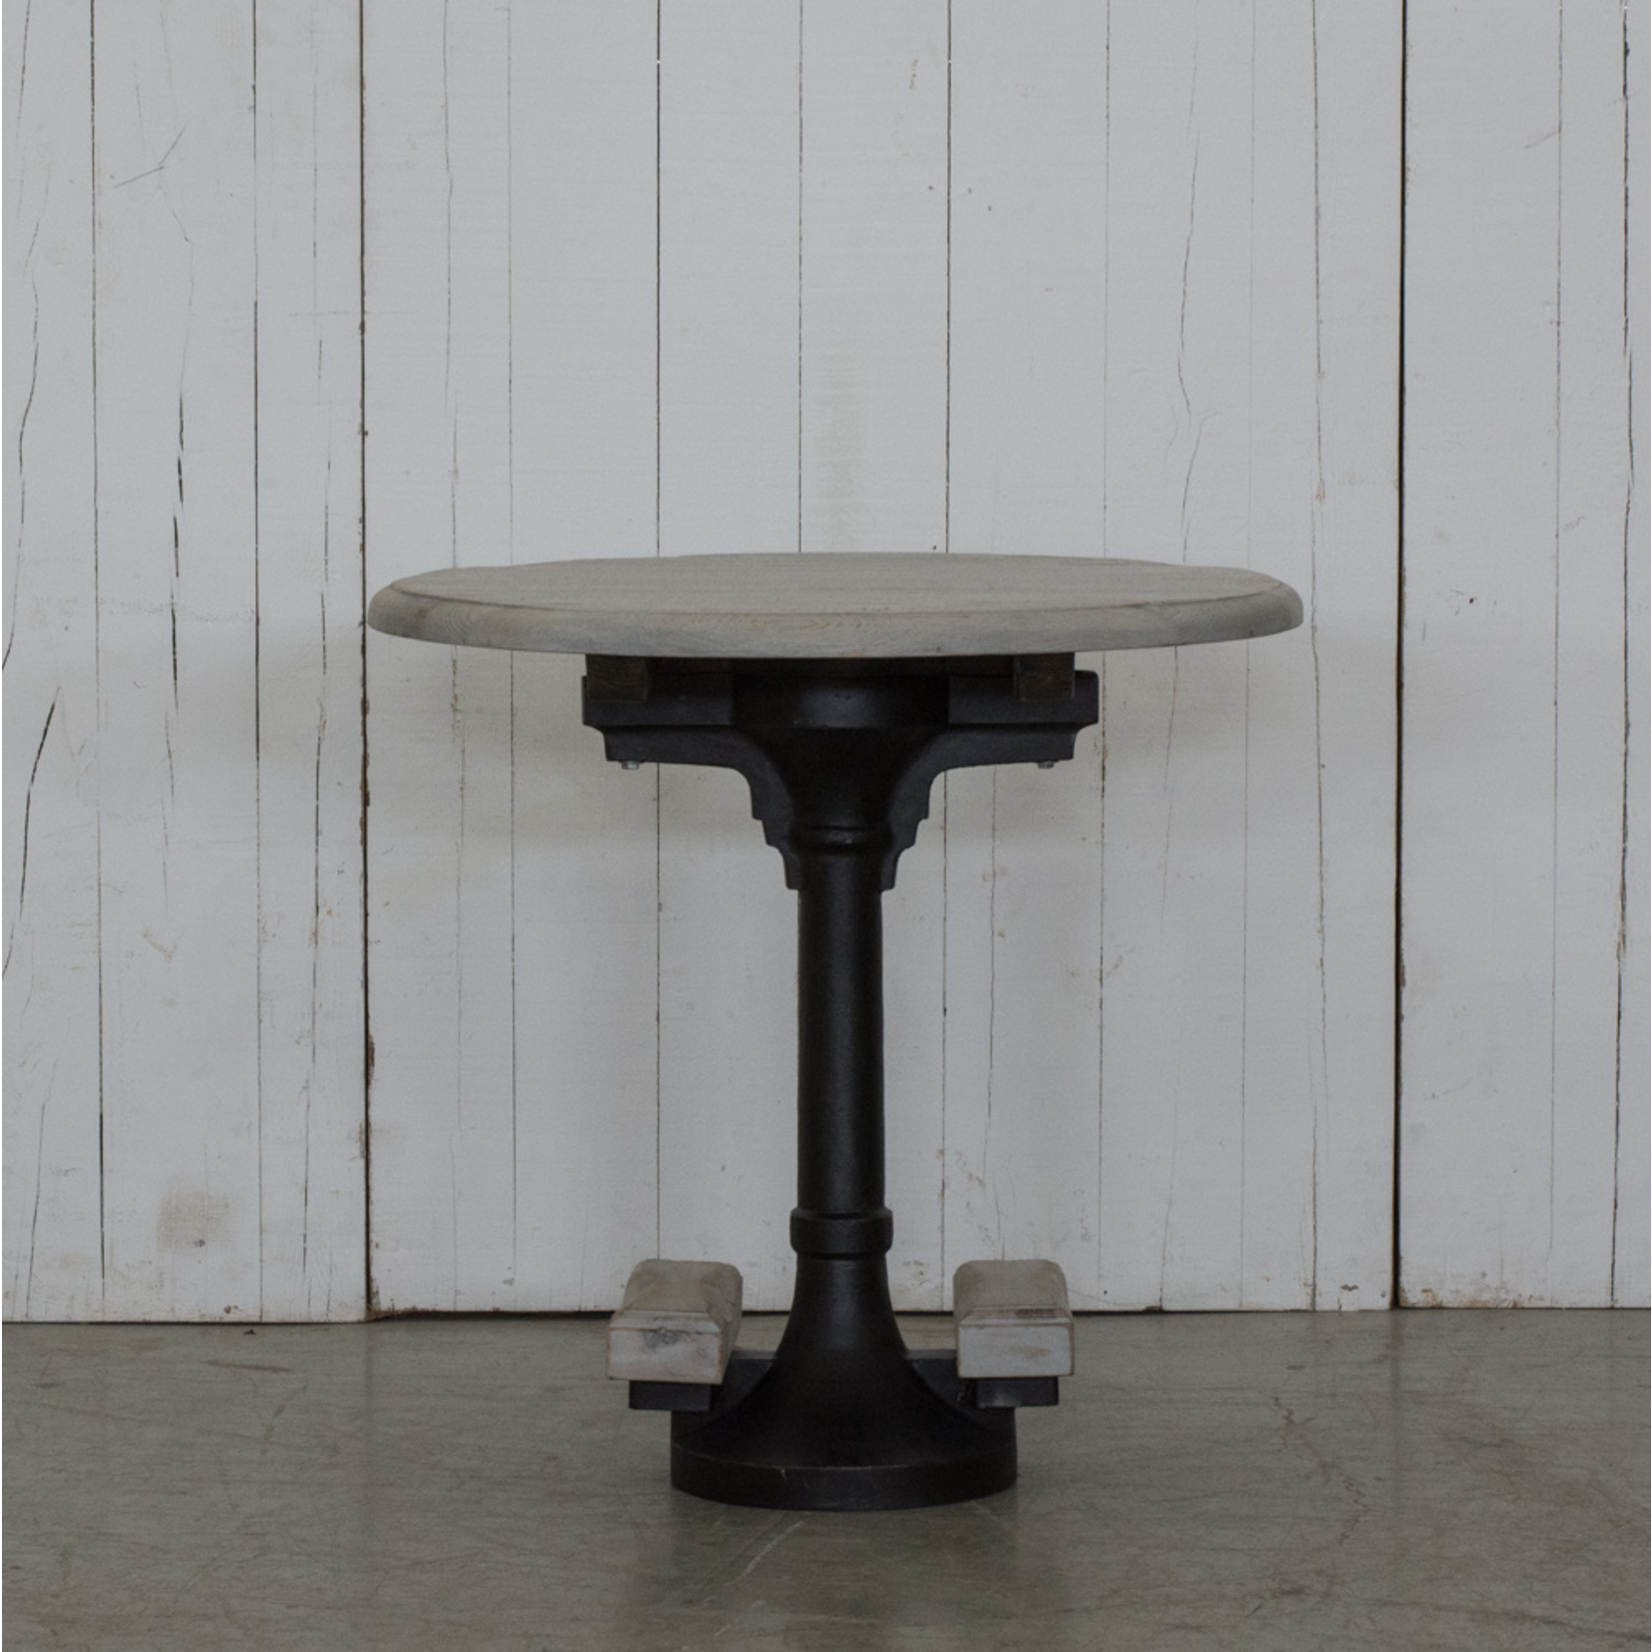 VAN THIEL DINING TABLE BISTRO TABLE WITH CAST METAL BASE